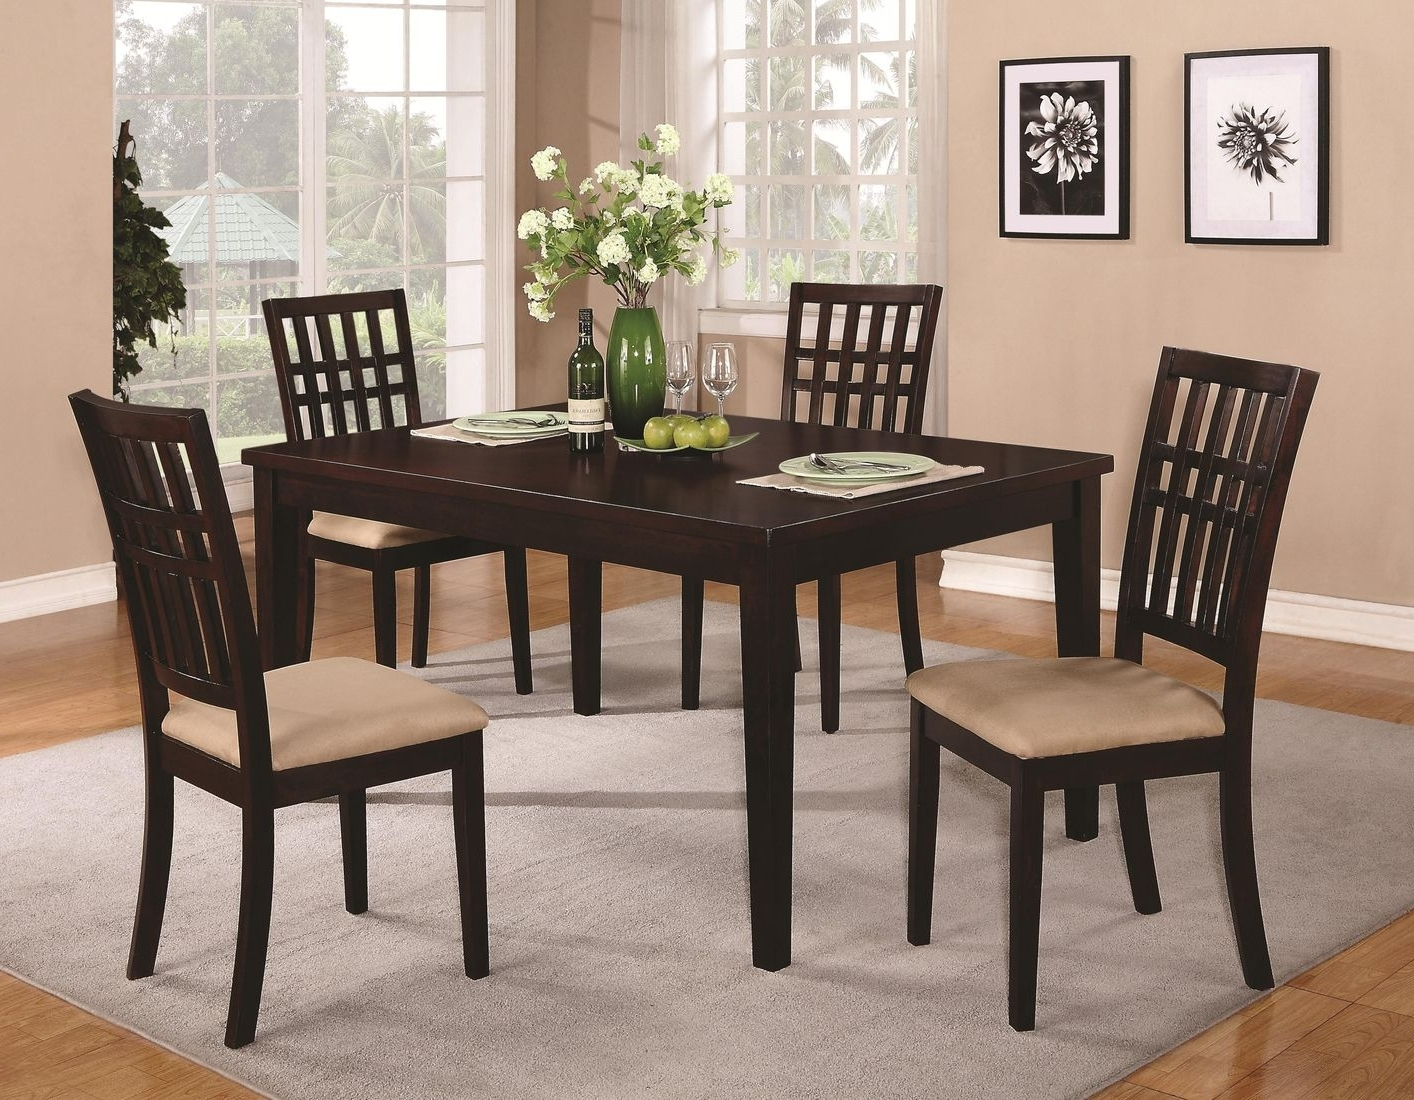 Brandt Dark Cherry Wood Dining Table – Steal A Sofa Furniture For Favorite Dining Sofa Chairs (View 3 of 15)